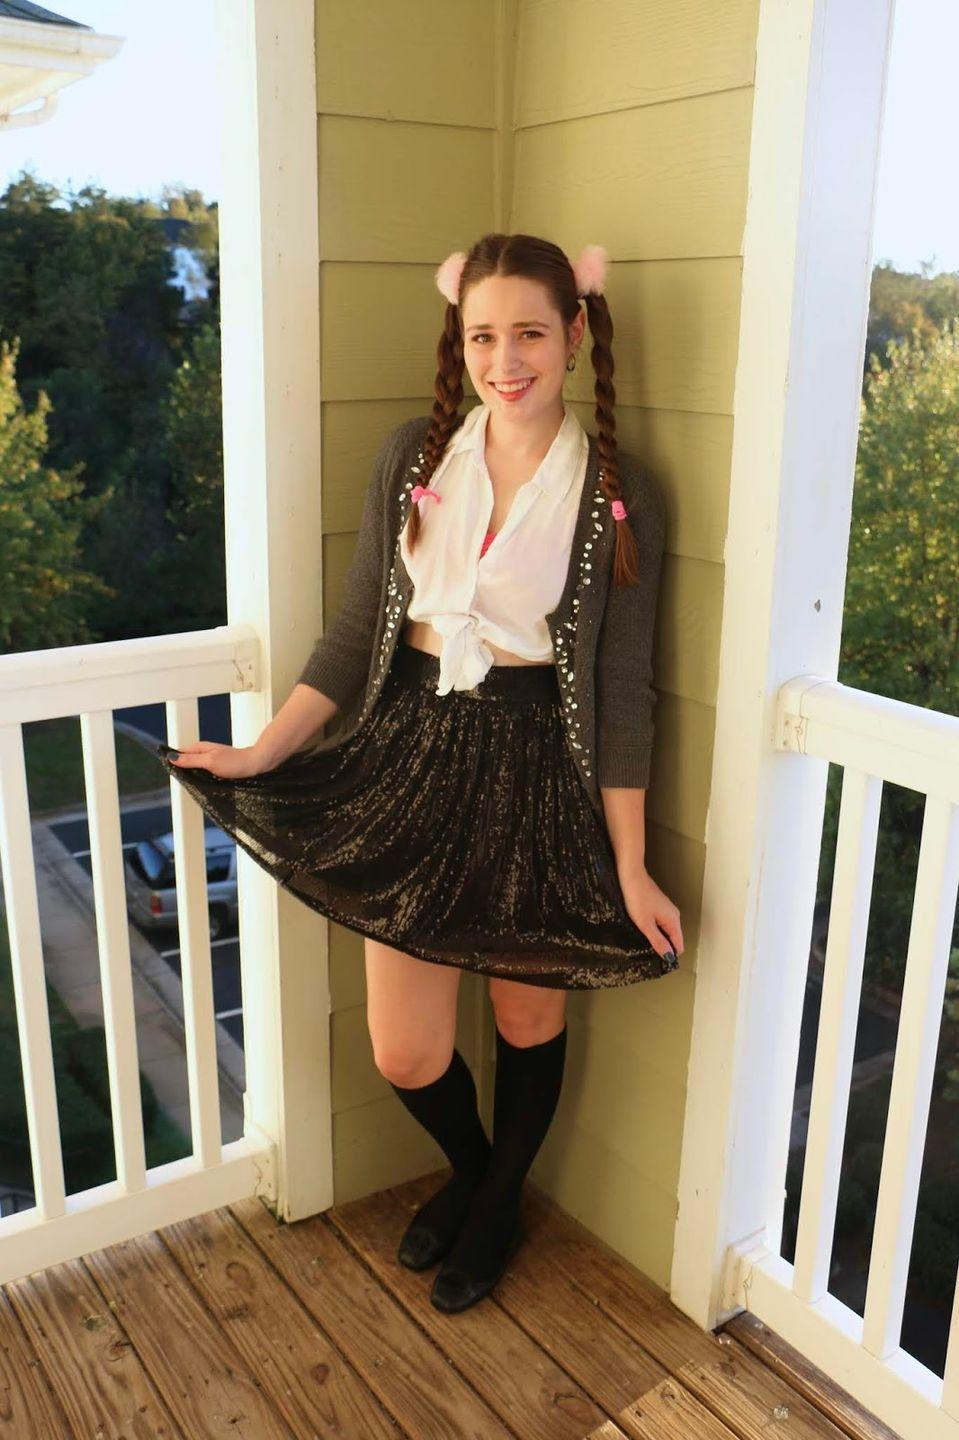 """<p>Take note from the princess of pop with this iconic outfit.</p><p><strong>Get the tutorial at <a href=""""http://www.southernbelleintraining.com/2018/10/easy-diy-halloween-costume-britney.html"""" rel=""""nofollow noopener"""" target=""""_blank"""" data-ylk=""""slk:Southern Belle in Training"""" class=""""link rapid-noclick-resp"""">Southern Belle in Training</a>.</strong></p><p><strong><a class=""""link rapid-noclick-resp"""" href=""""https://www.amazon.com/FLORIA-Classic-Cropped-Cardigan-HEATHERGREY2/dp/B073ZNVS1M?tag=syn-yahoo-20&ascsubtag=%5Bartid%7C10050.g.22118522%5Bsrc%7Cyahoo-us"""" rel=""""nofollow noopener"""" target=""""_blank"""" data-ylk=""""slk:SHOP CARDIGANS"""">SHOP CARDIGANS</a><br></strong></p>"""